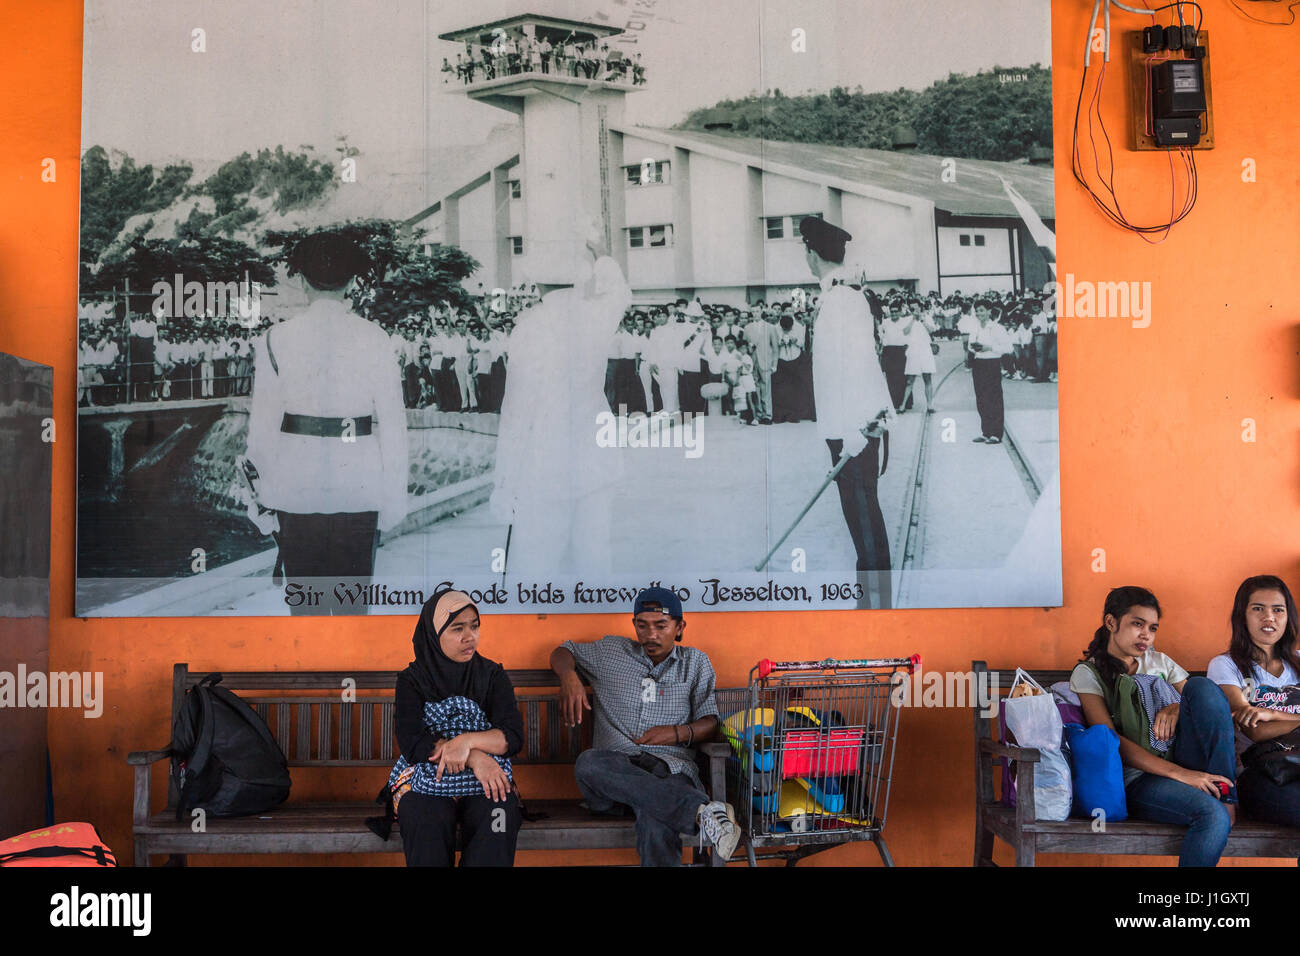 Ferry passengers at Jesselton Point terminal of Kota Kinabalu with a historic photo on the wall. © Reynold - Stock Image